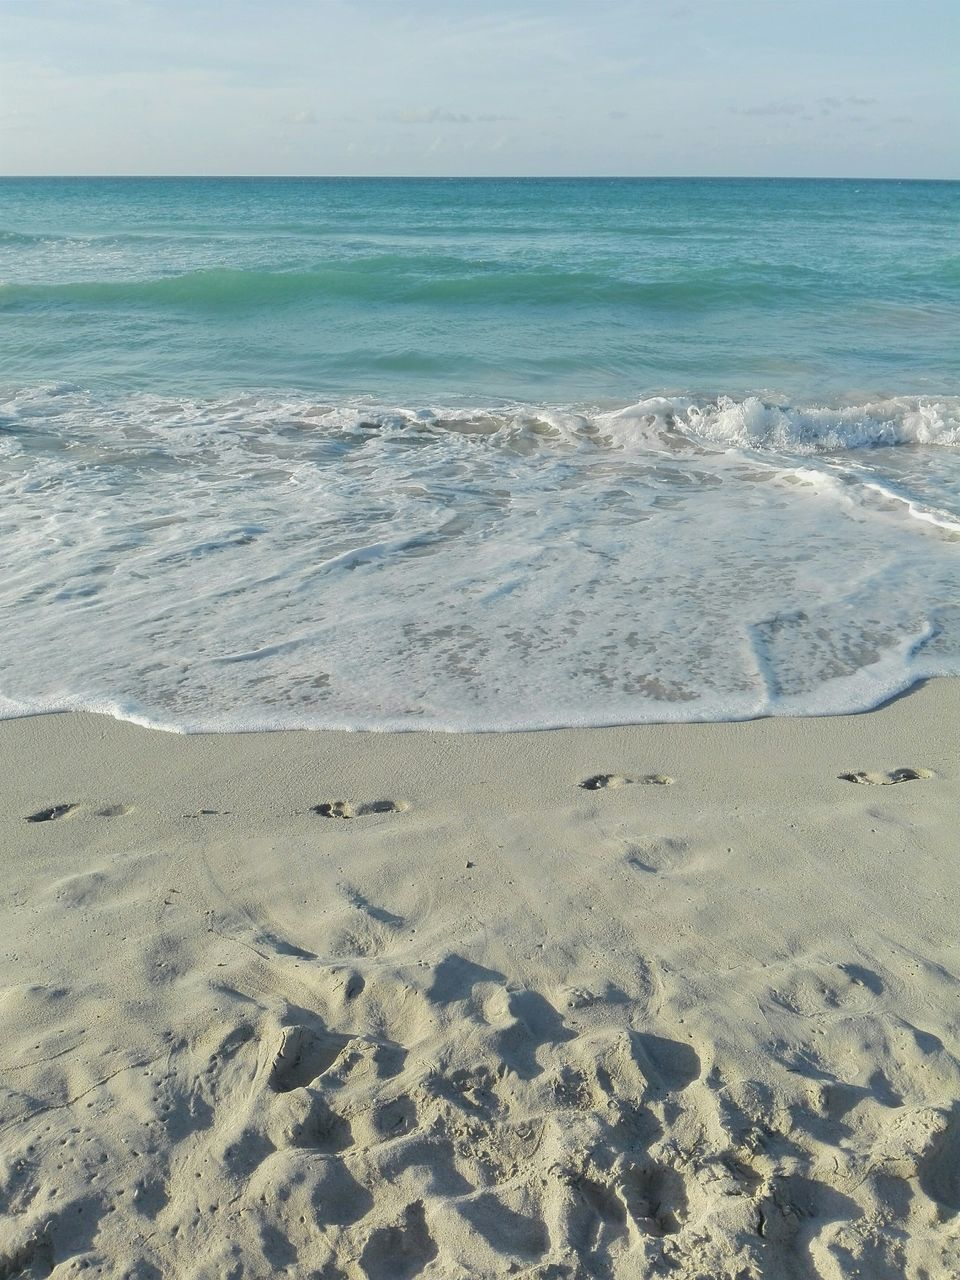 sea, beach, nature, horizon over water, sand, beauty in nature, tranquility, water, scenics, shore, outdoors, tranquil scene, no people, day, sky, wave